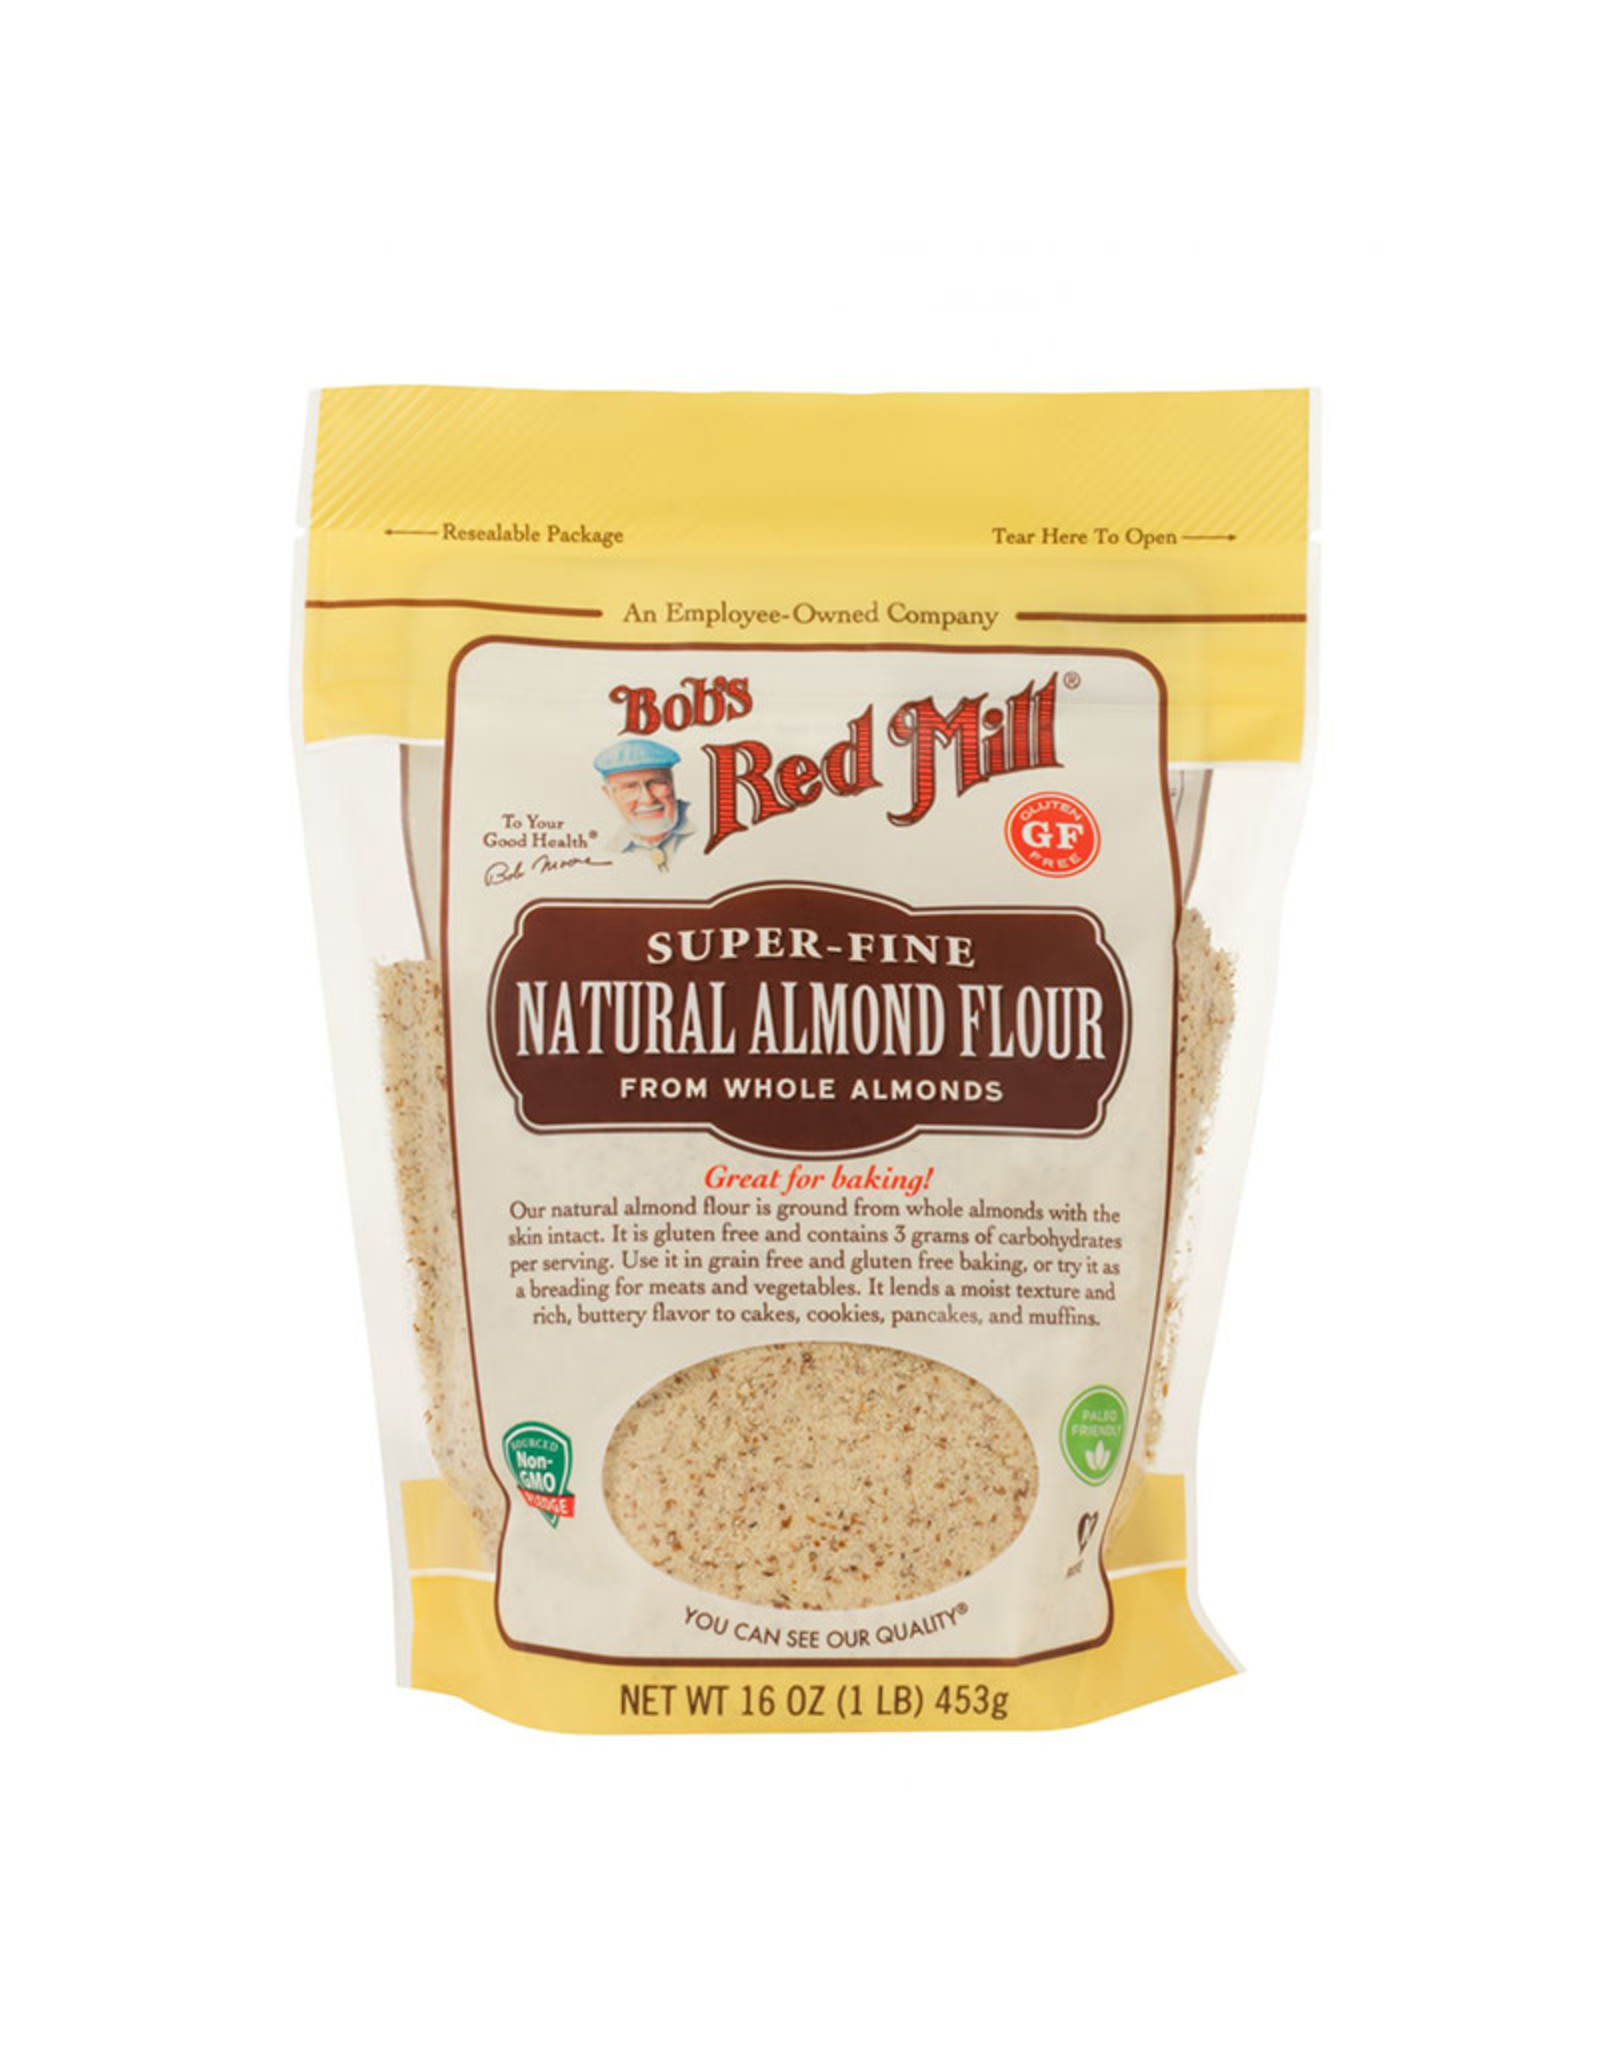 Bobs Red Mill Bobs Red Mill - Almond Flour, Natural (453g)